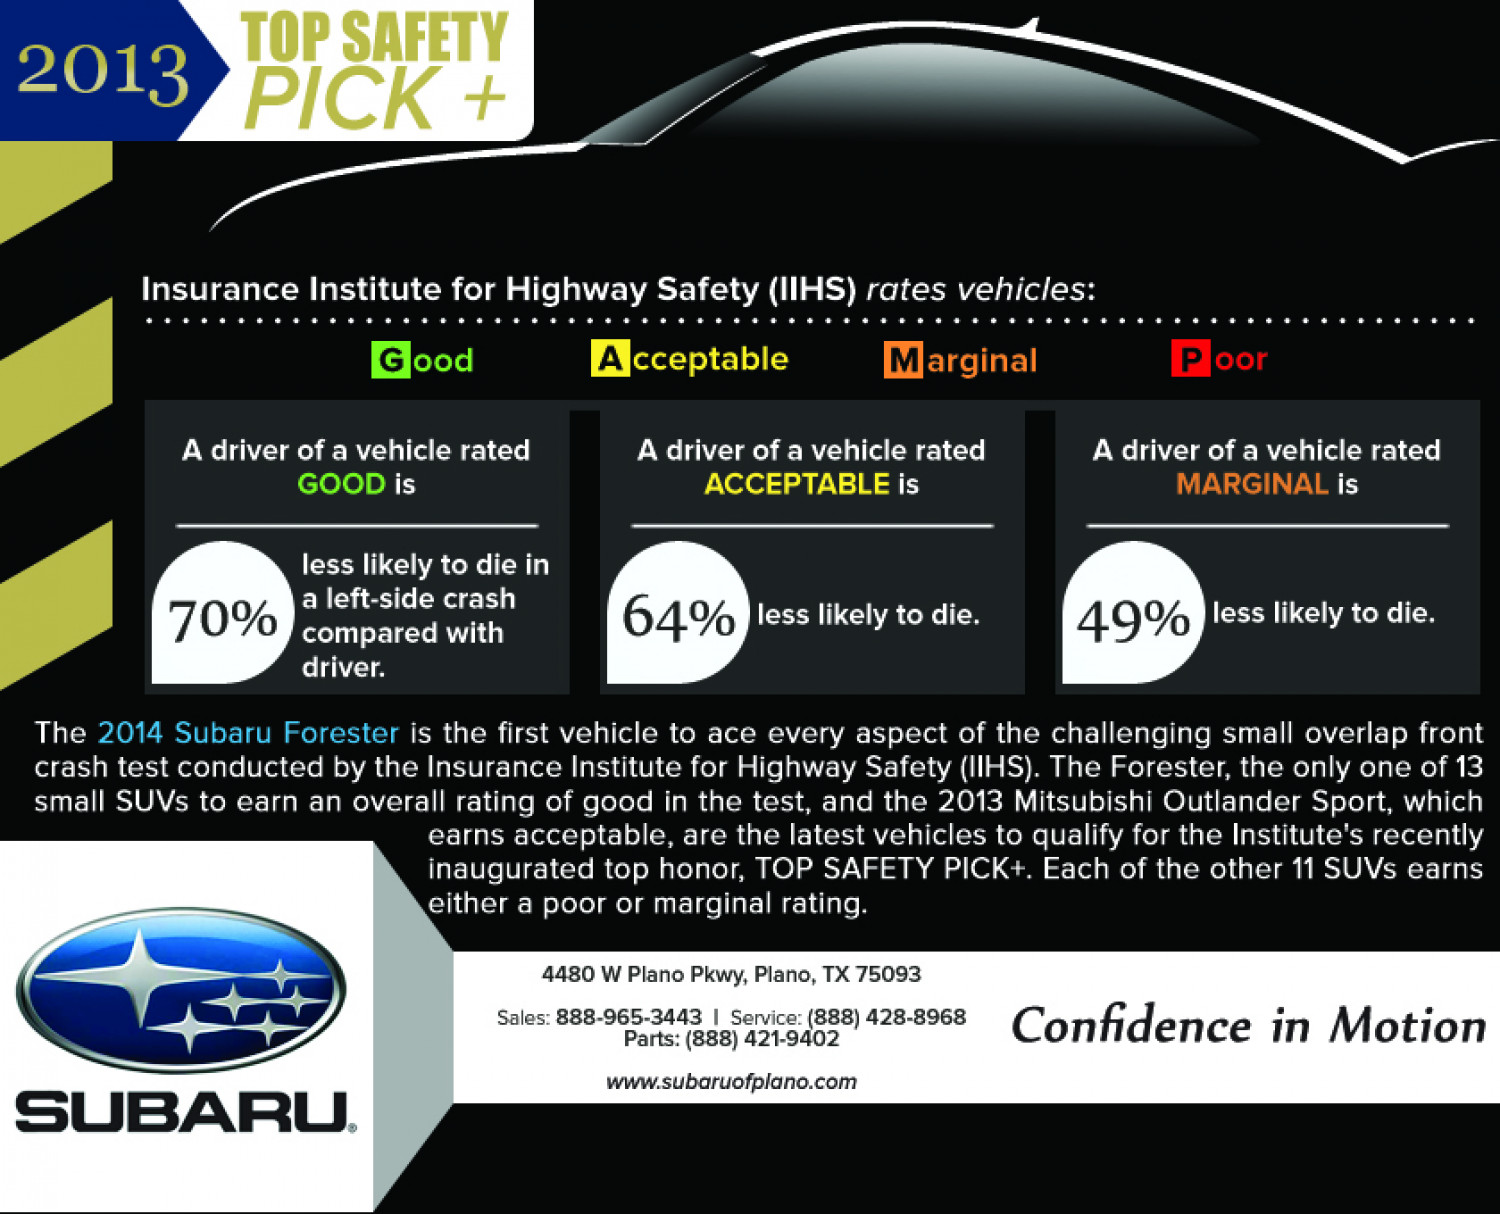 2013 Top Safety Pick Infographic